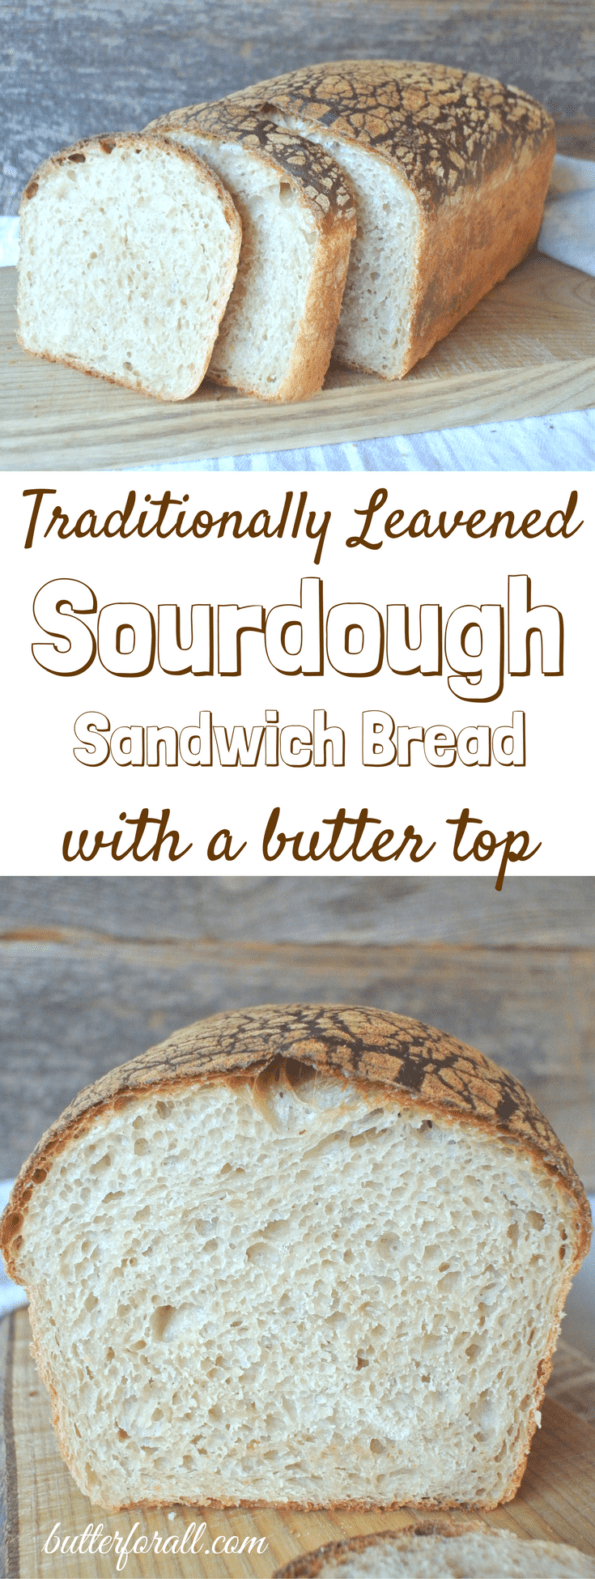 Butter Top Sourdough Sandwich Bread